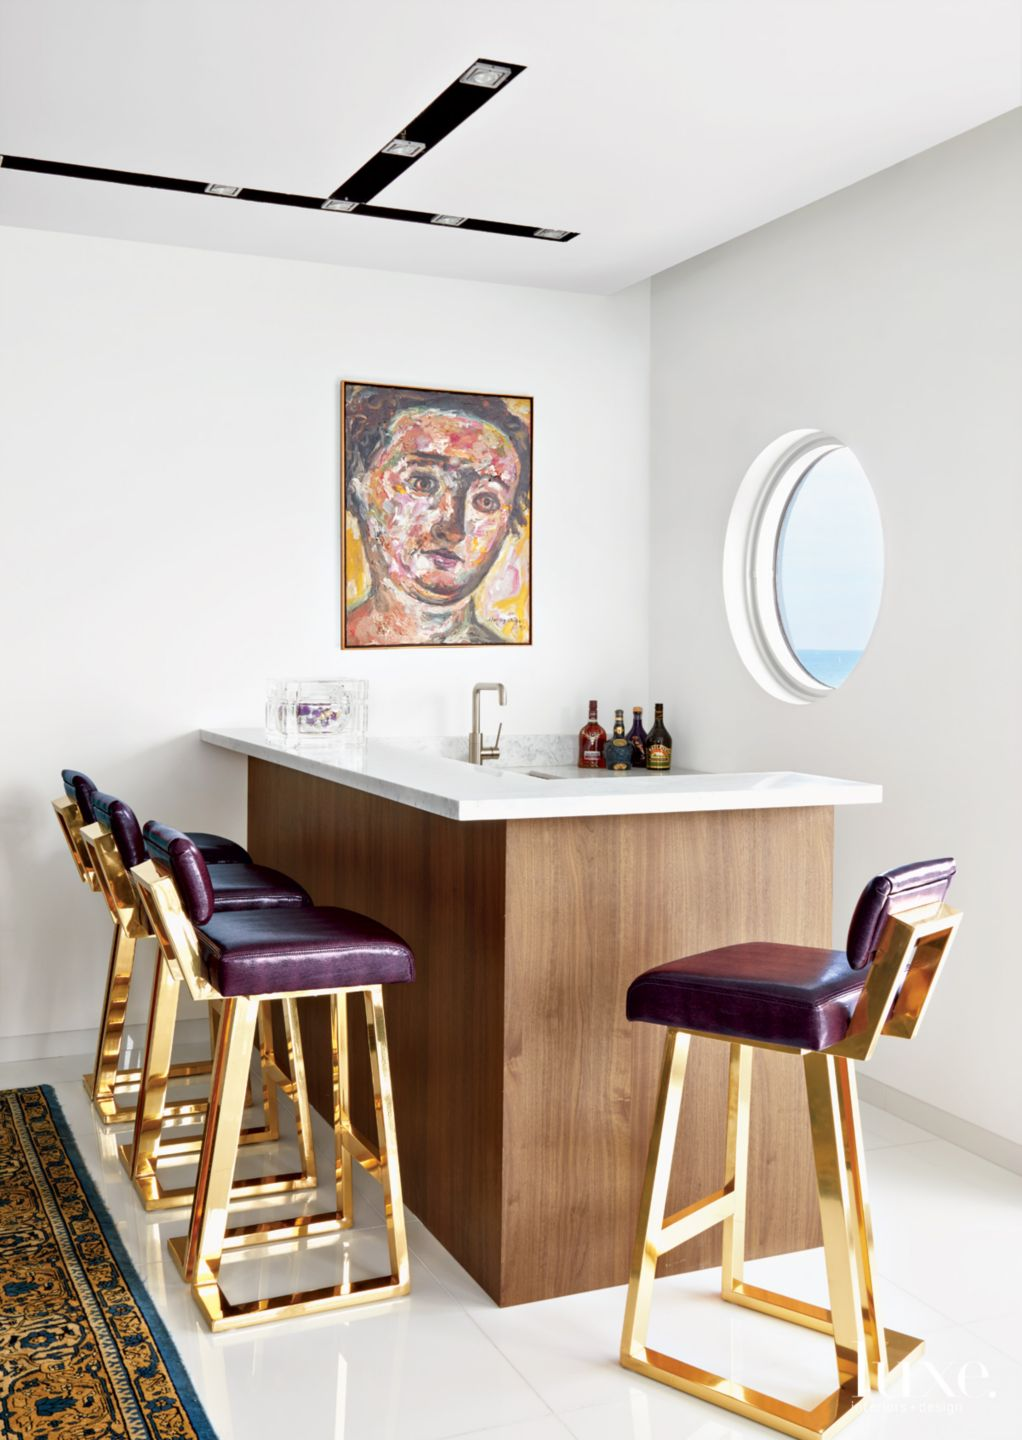 Contemporary White Bar Area with Porthole Window